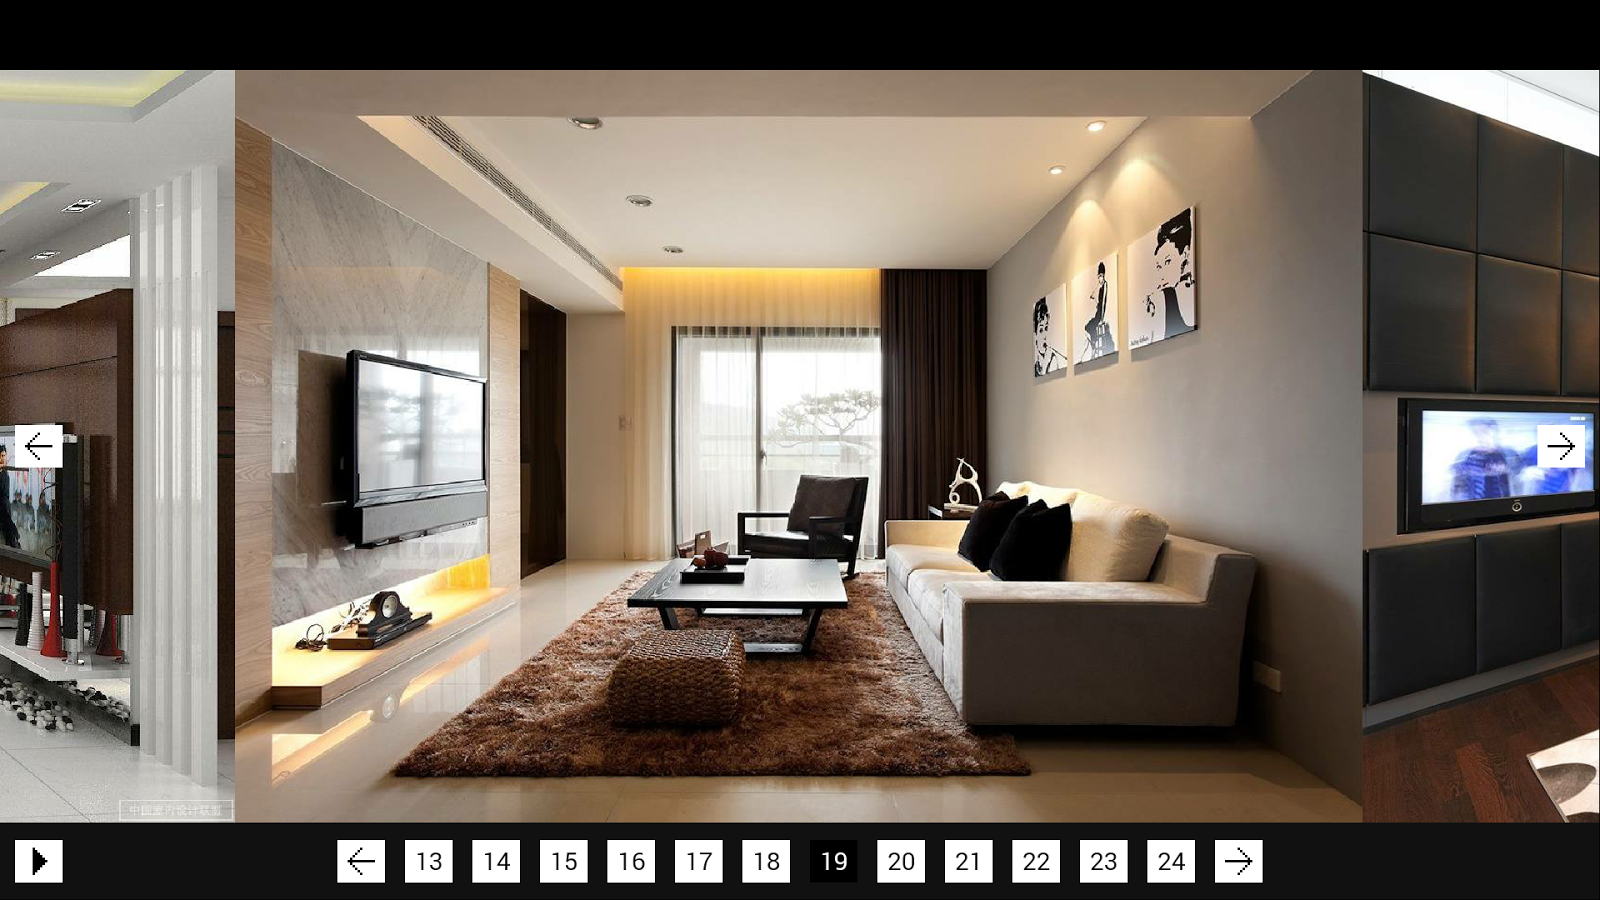 Home interior design android apps on google play for Interior design plans for houses